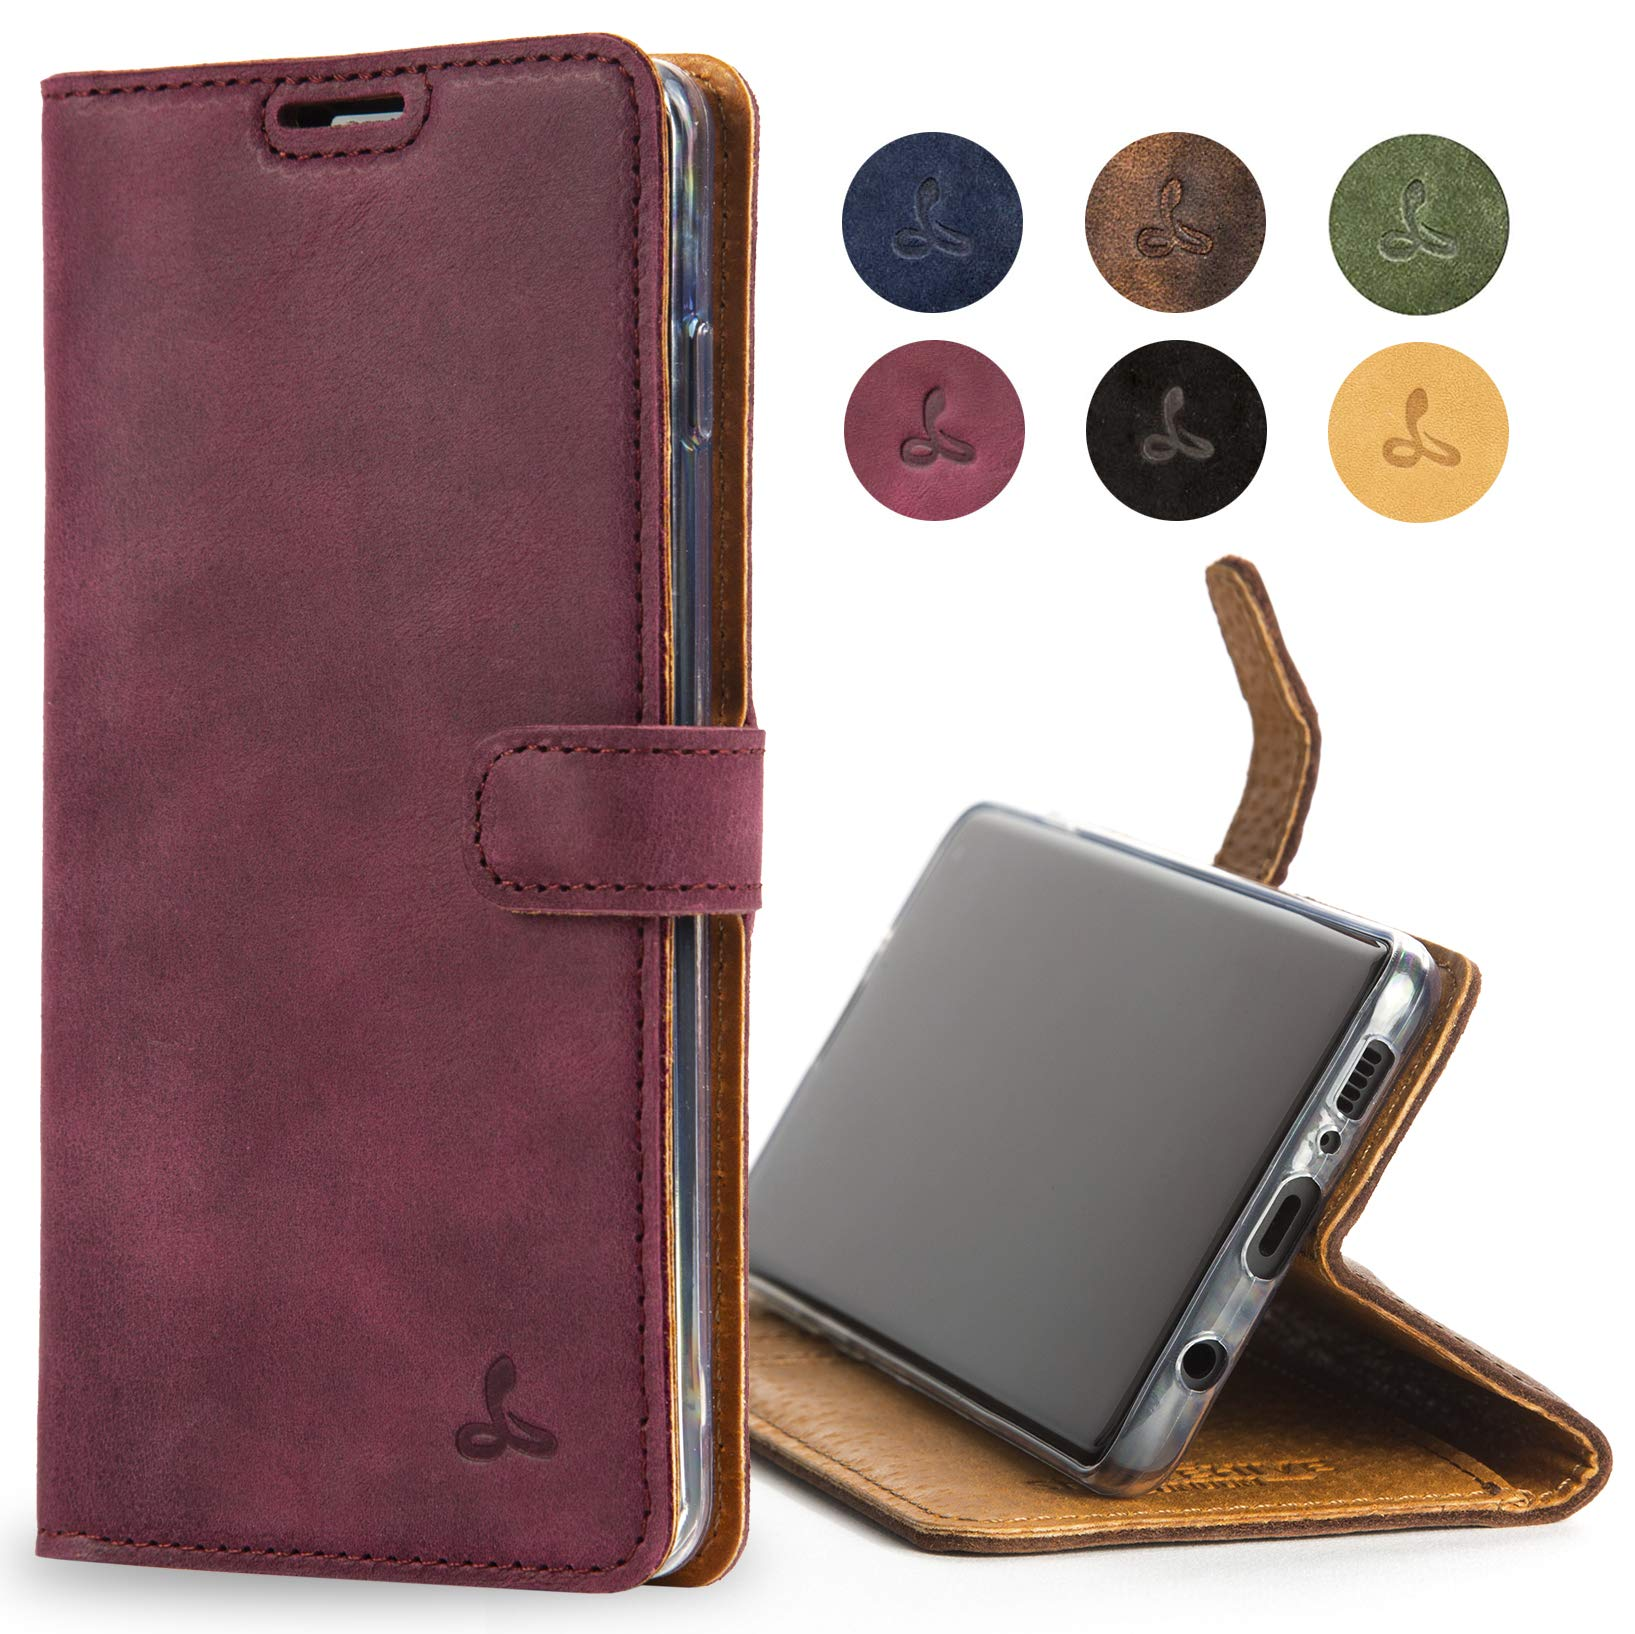 Snakehive Samsung Galaxy S10 Case, Luxury Genuine Leather Wallet with Viewing Stand and Card Slots, Flip Cover Gift Boxed and Handmade in Europe for Samsung Galaxy S10 - (Plum) by Snakehive